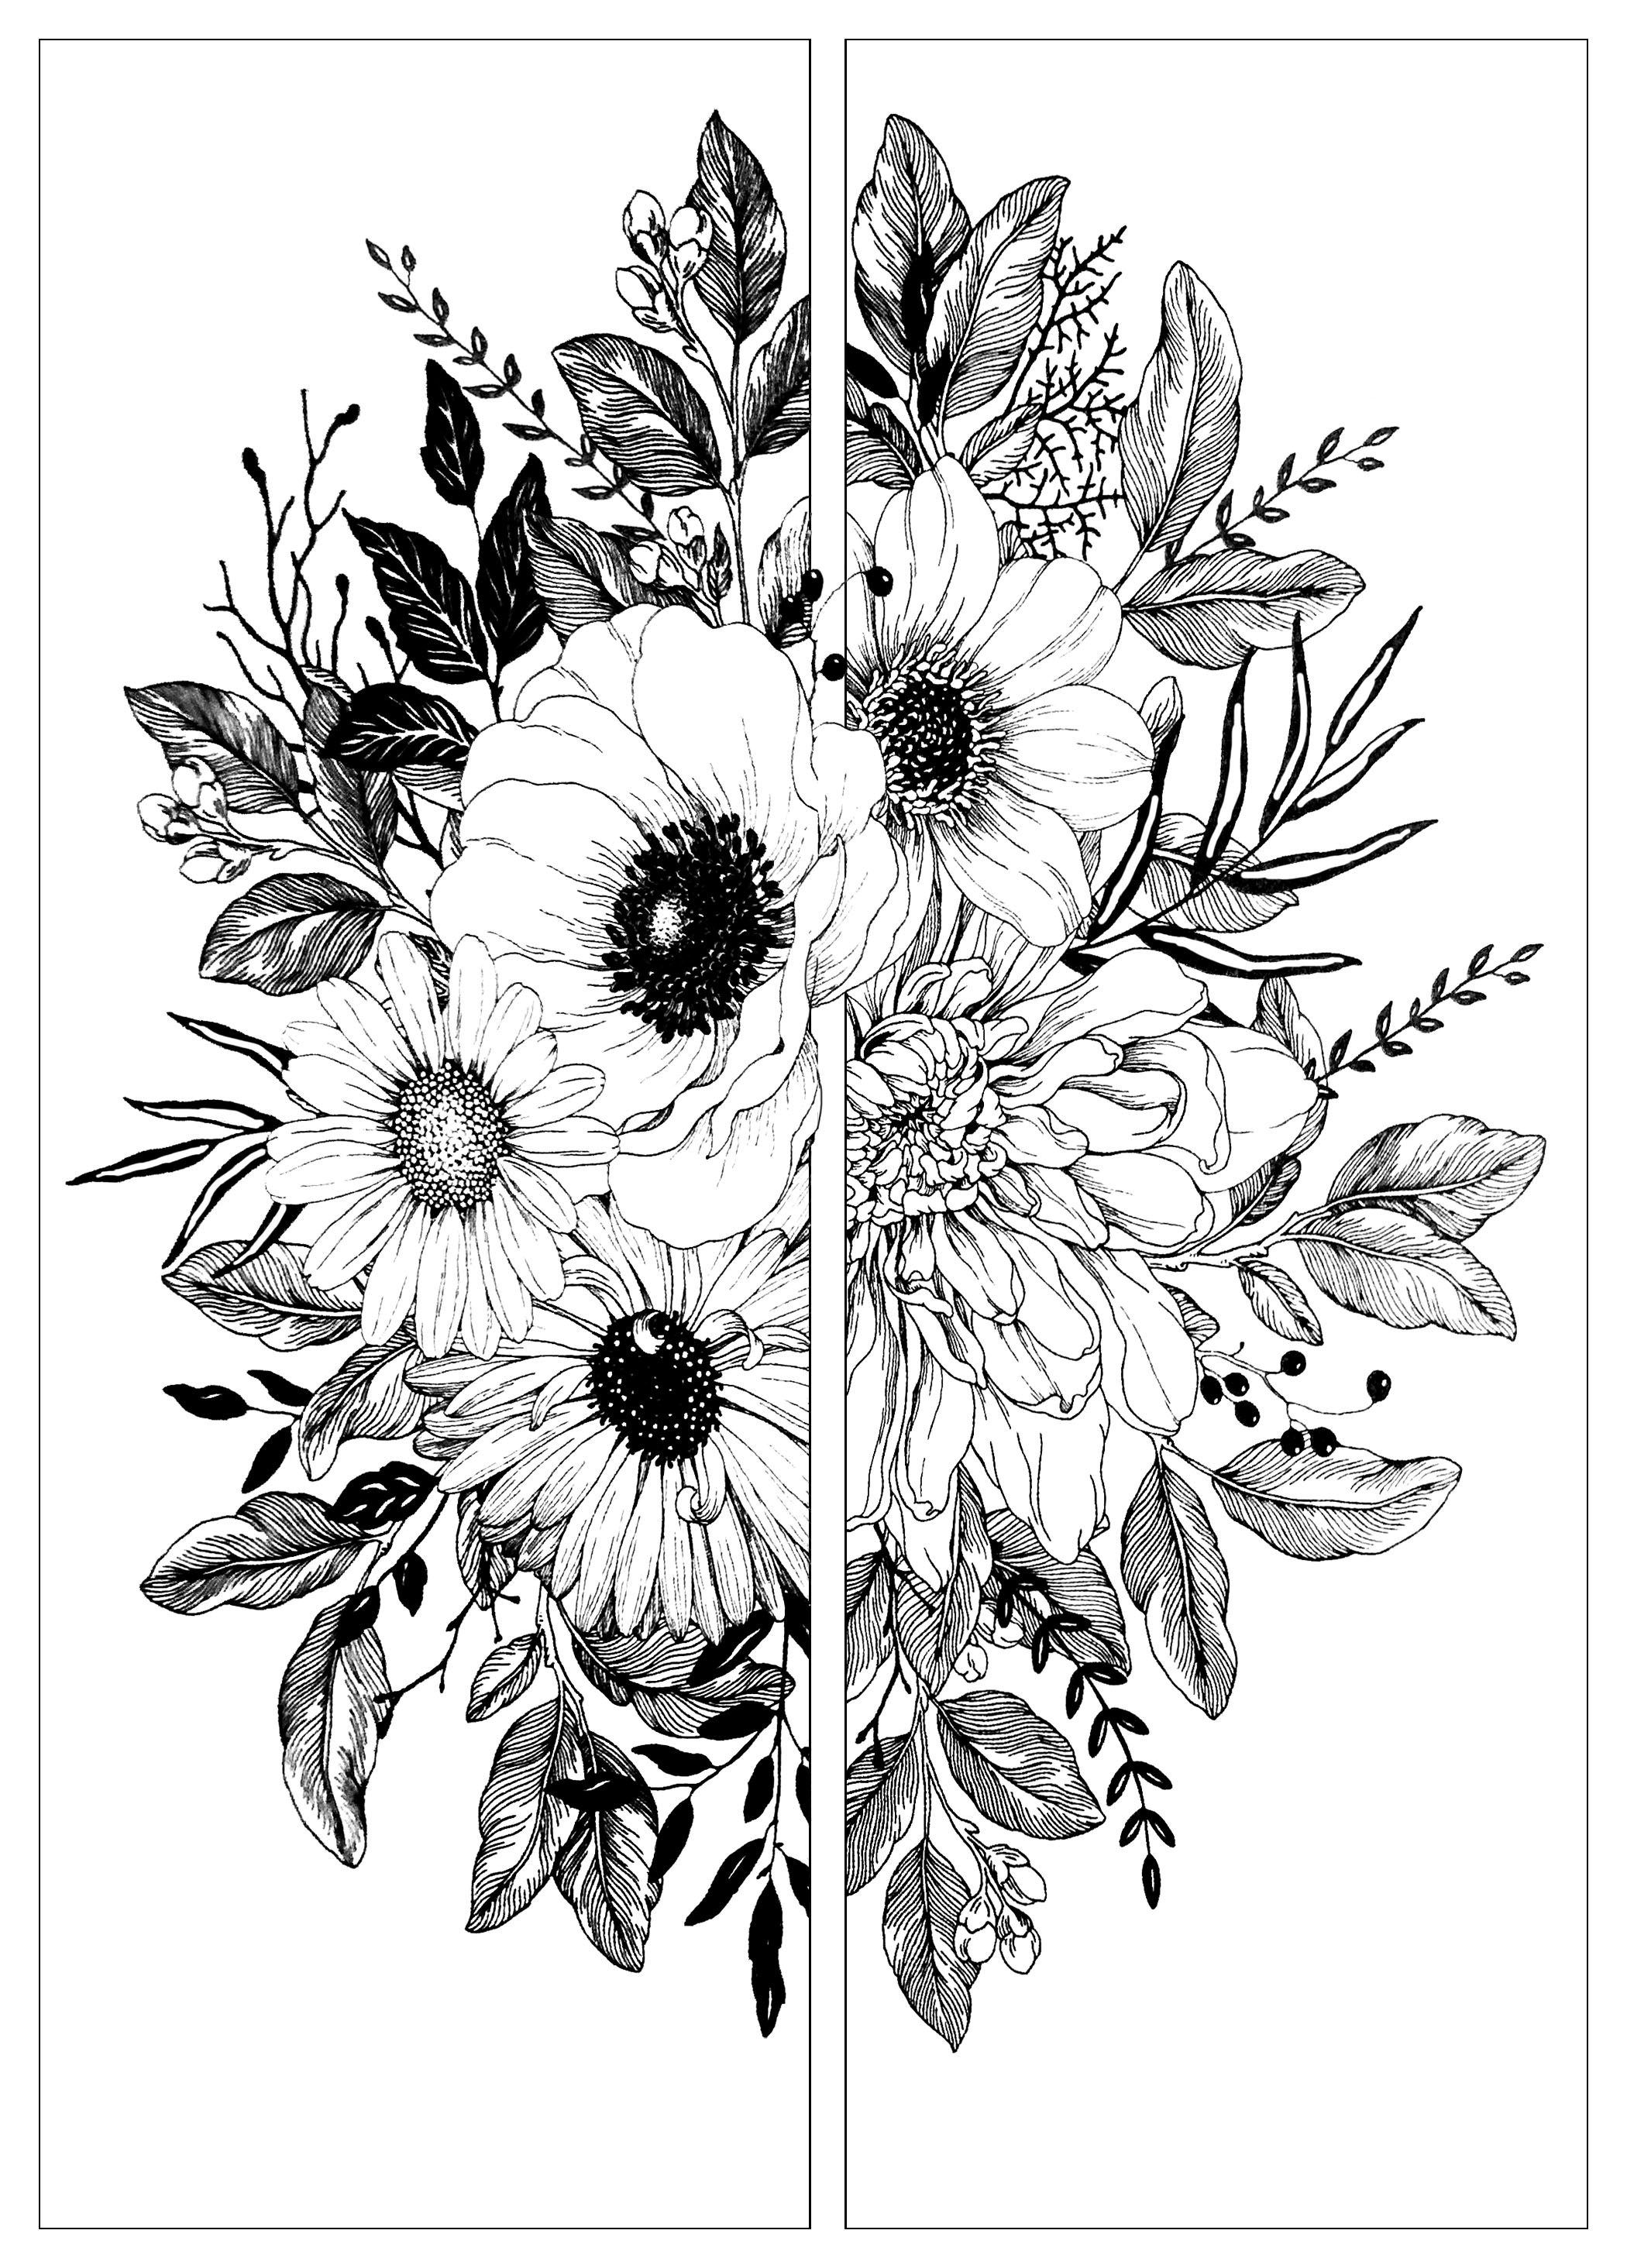 flower coloring pages adults flower coloring pages for adults coloringrocks adults coloring flower pages